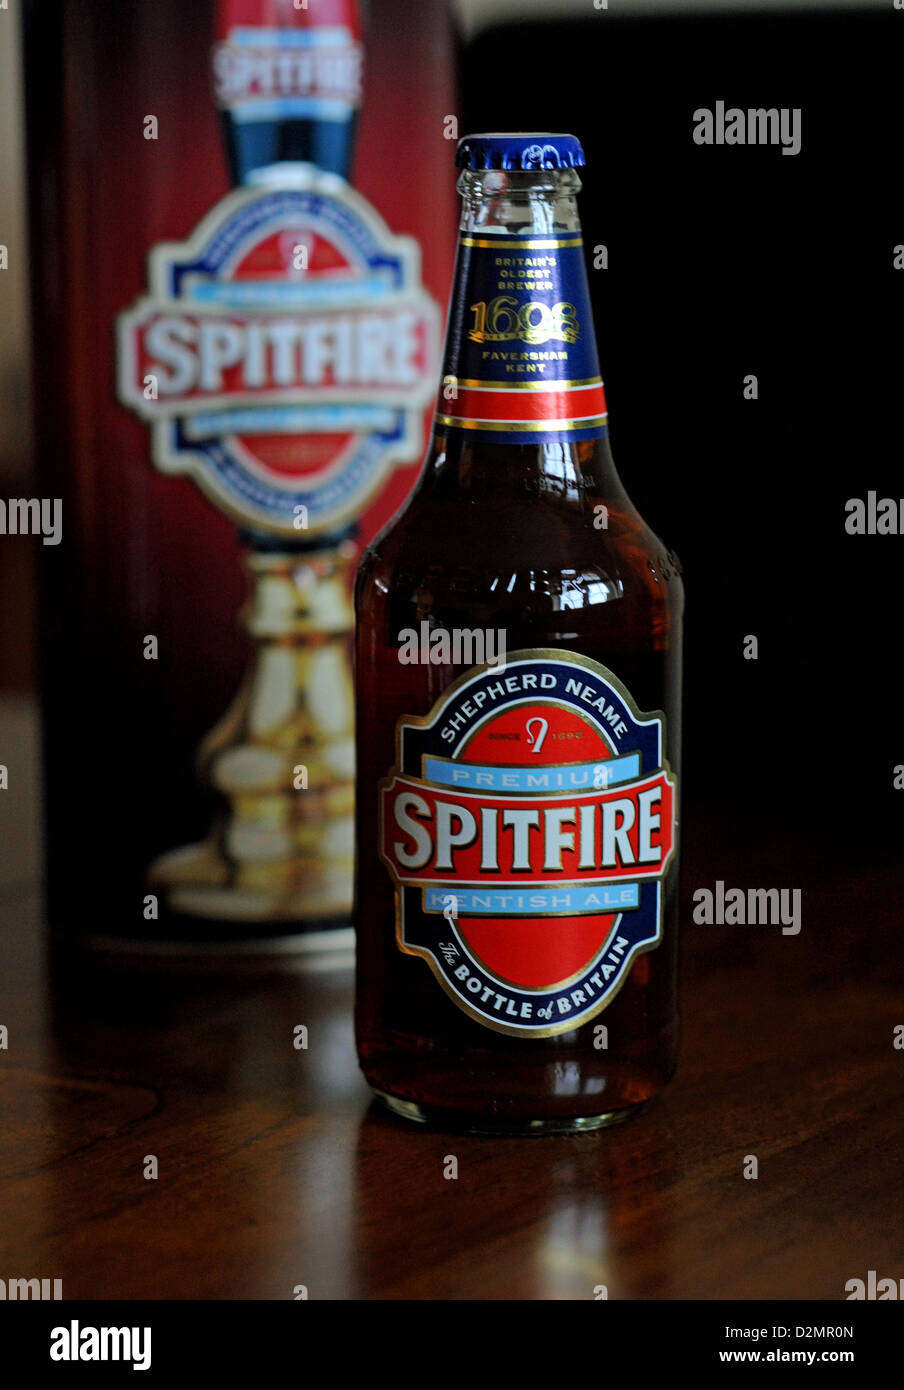 Bottle of Spitfire real ale brewed by Shepherd Neame from Kent UK - Stock Image